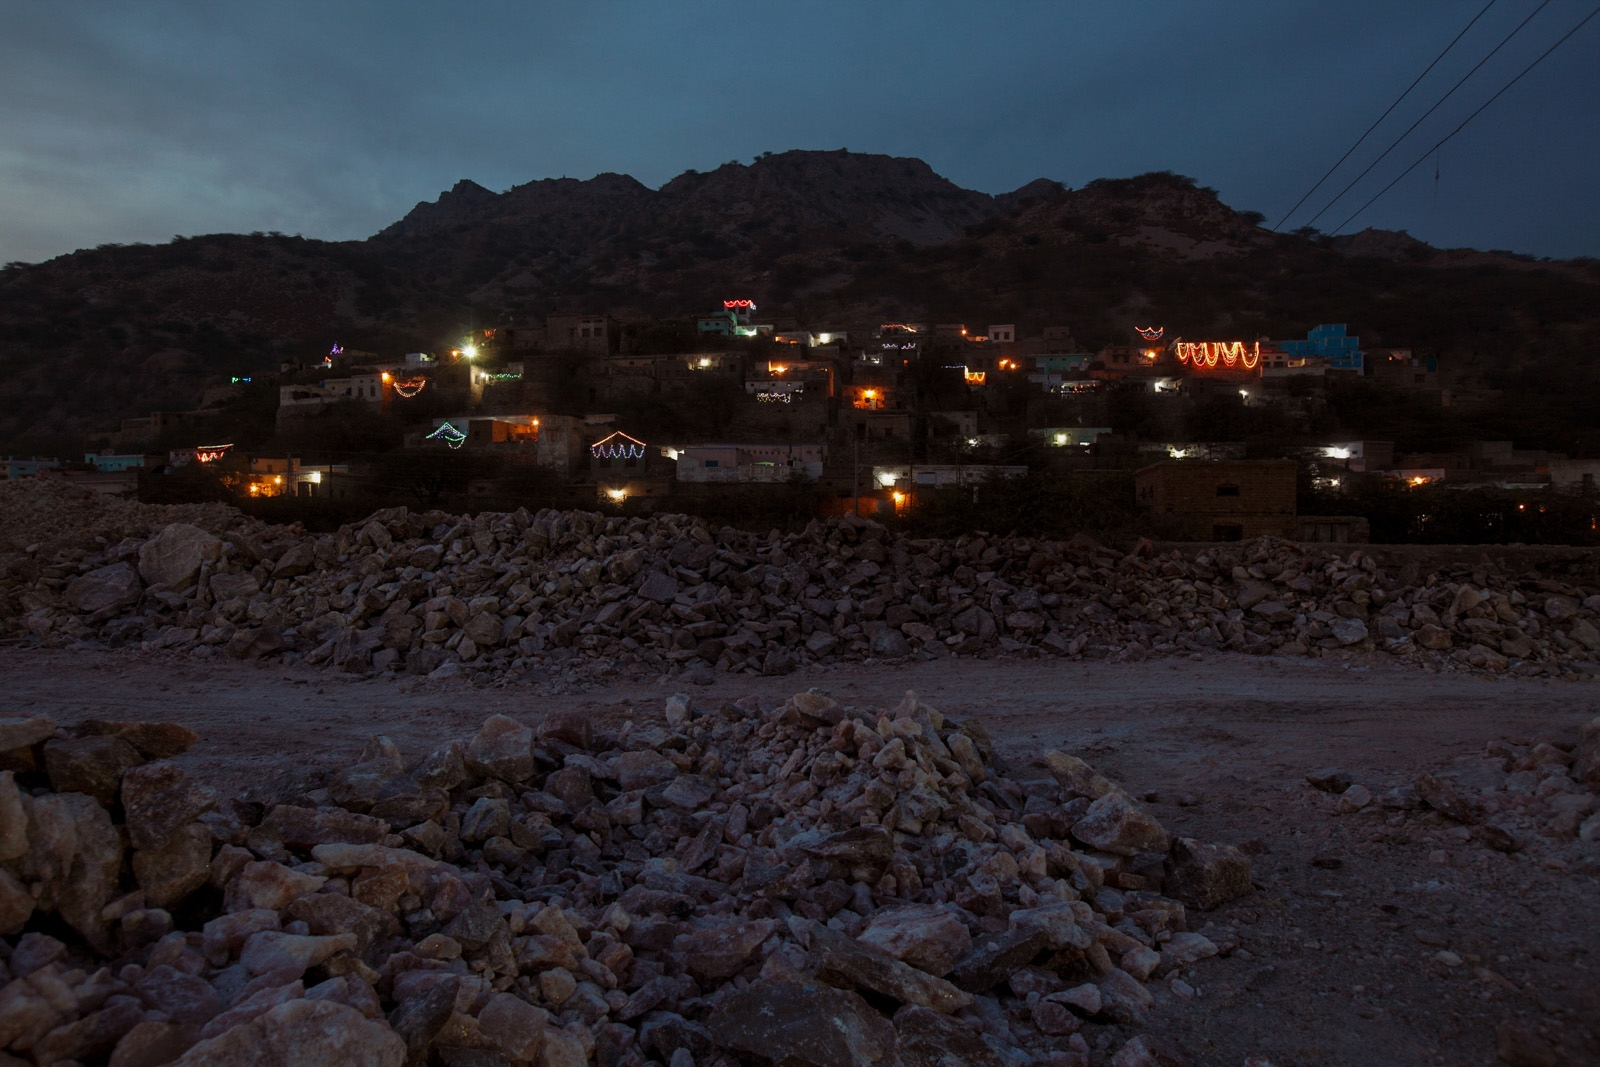 Salt miners houses are illuminated on the hillside above the Warcha salt mines below them.